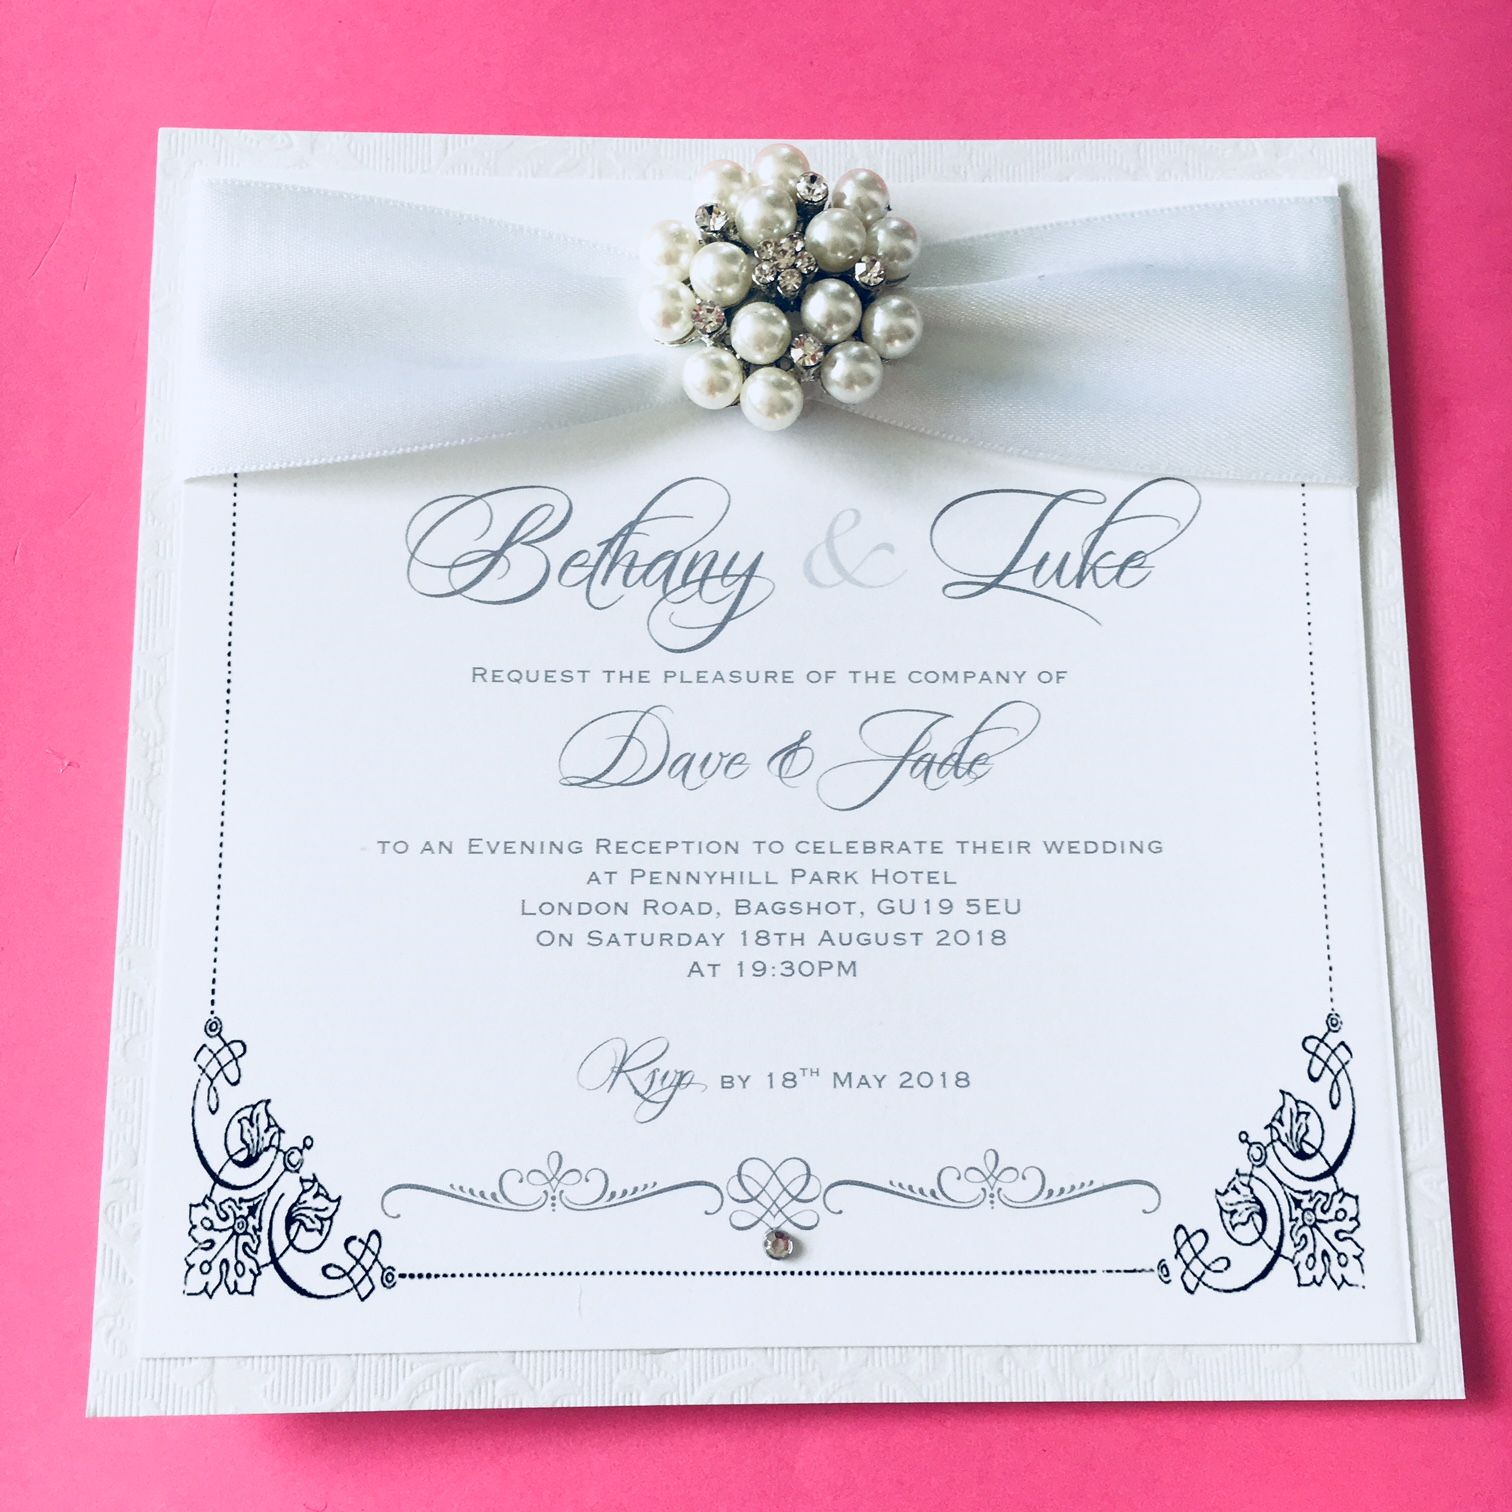 evening invitation with pearl brooch